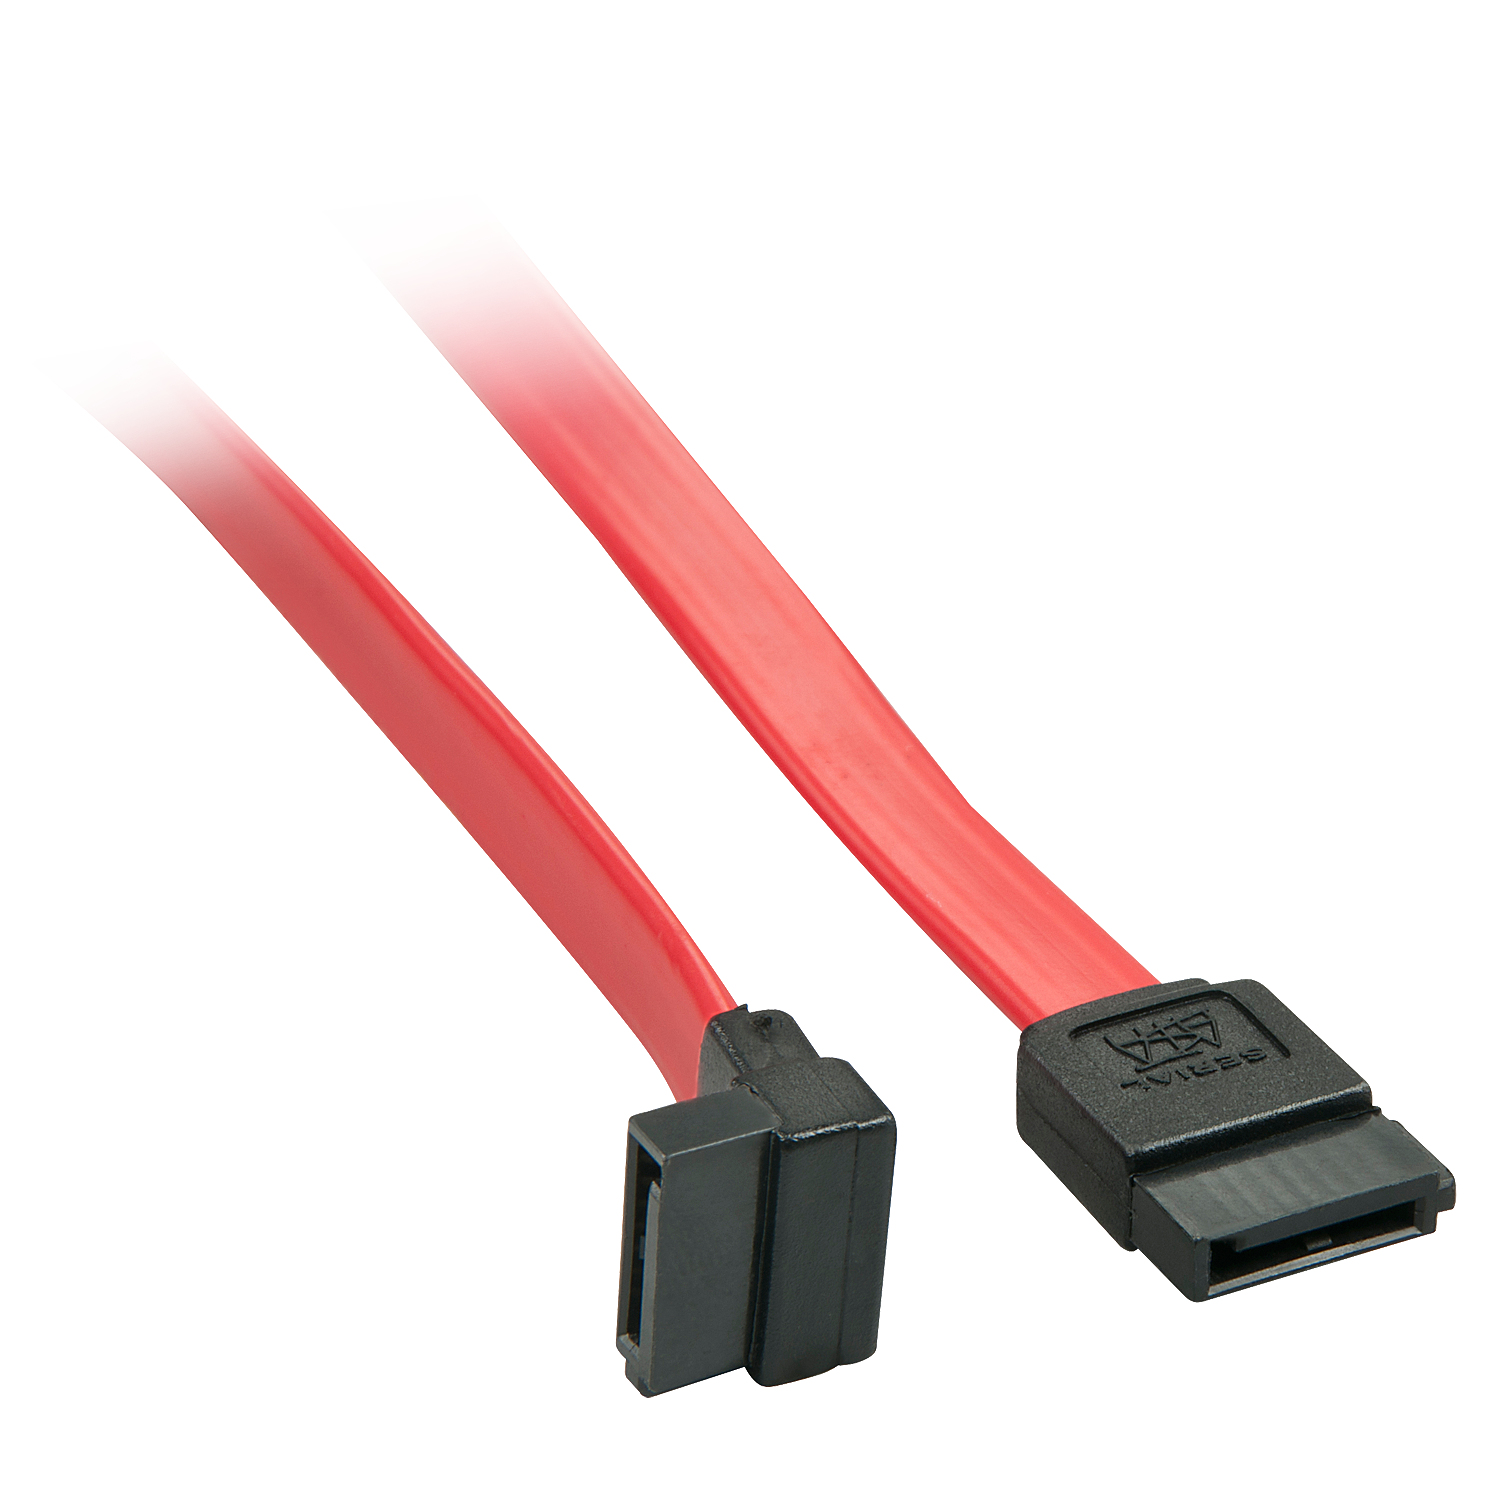 Lindy 33351 SATA cable 0.5 m SATA 7-pin Black,Red